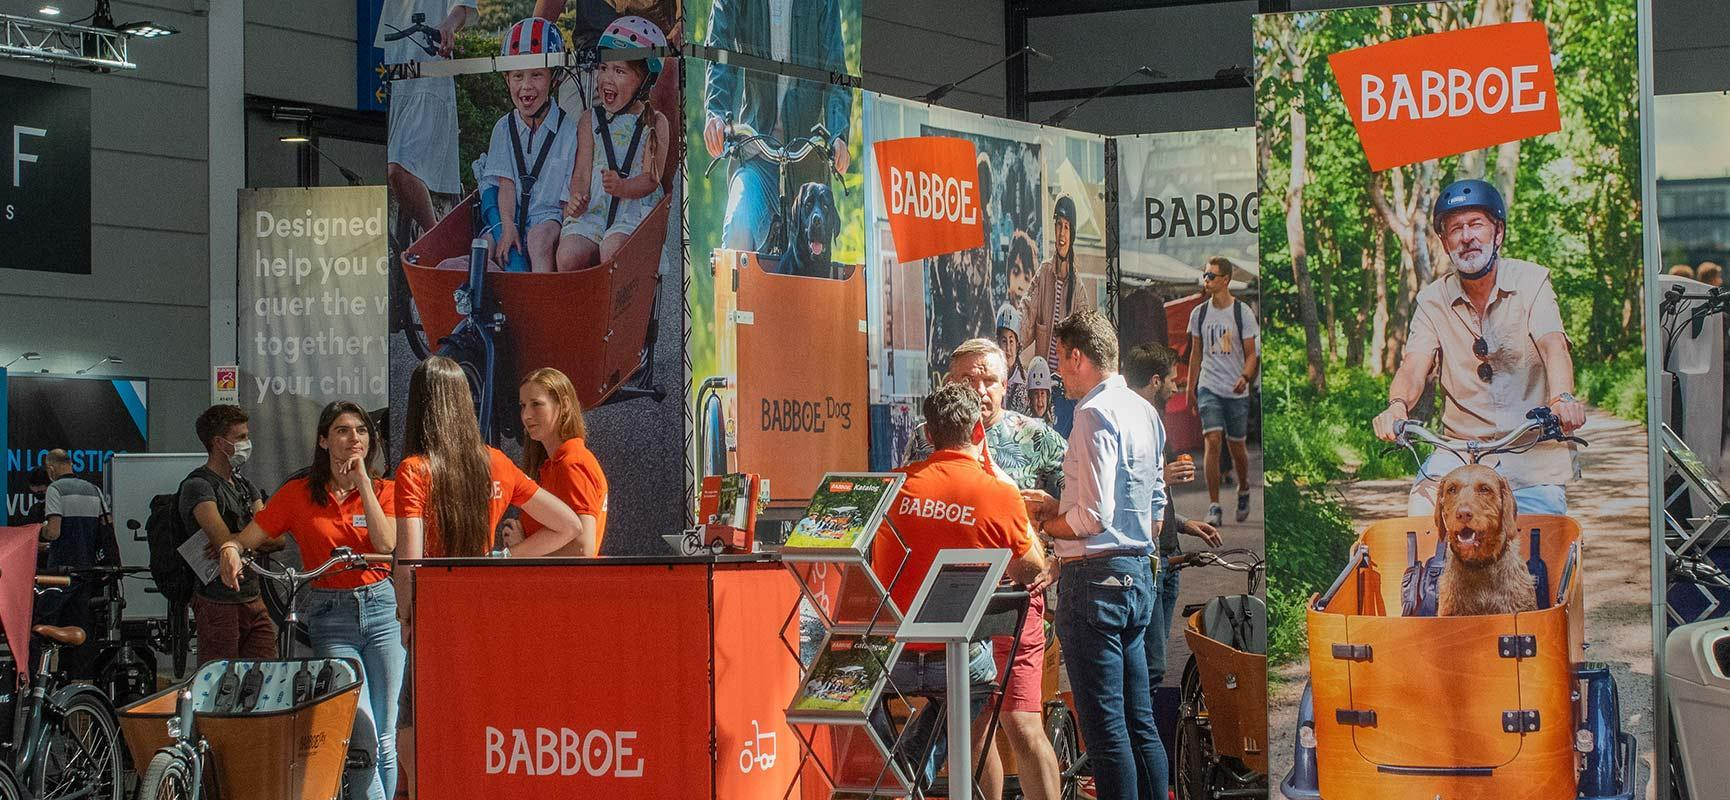 Babboe at Eurobike, the biggest bicycle trade show in Europe